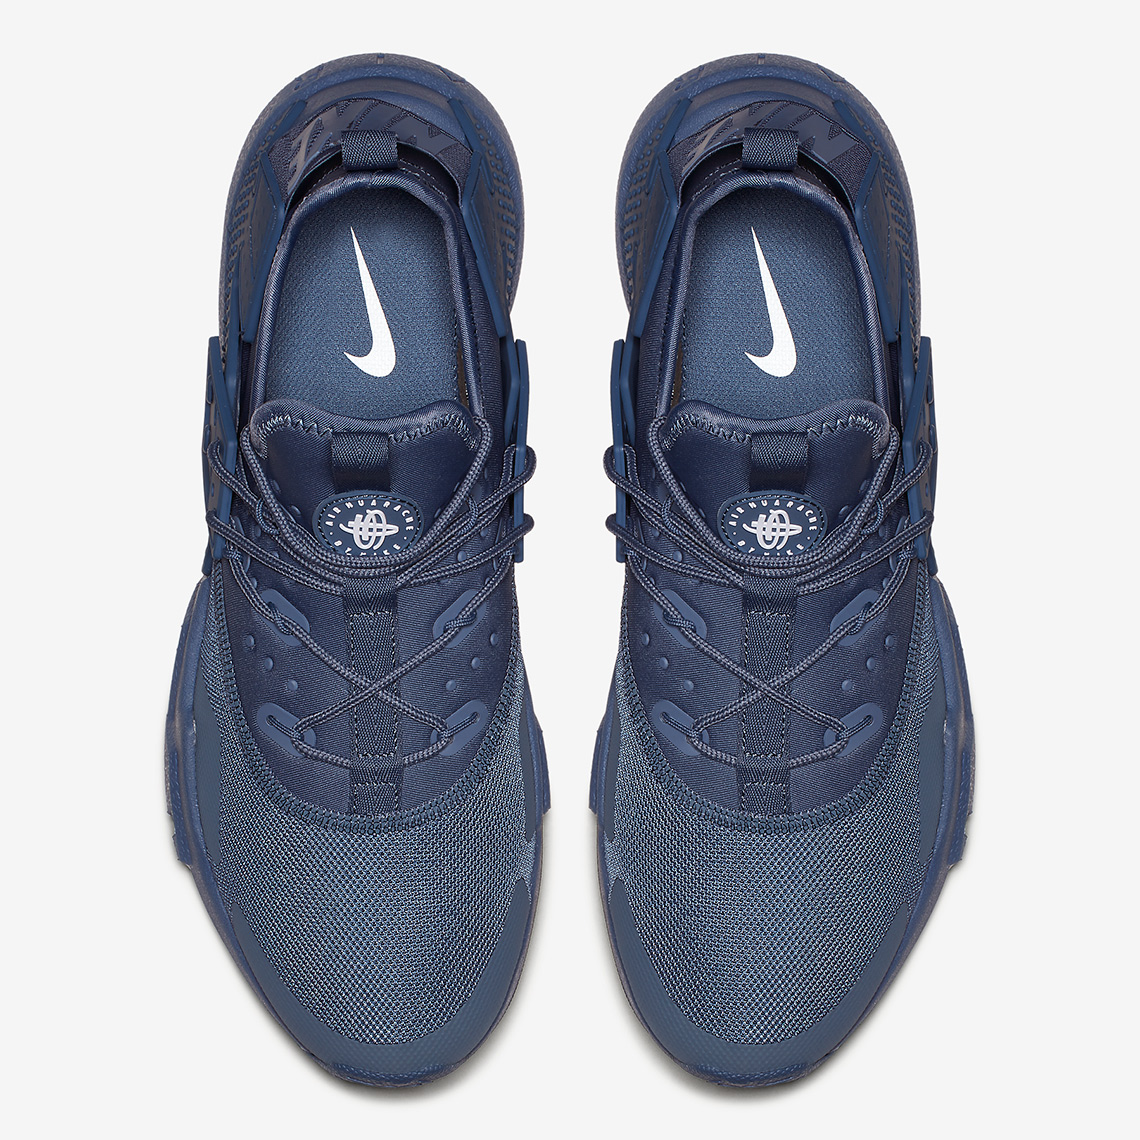 73c365259ba0ac The Nike Air Huarache Drift Is Coming In Diffused Blue Release Date ...